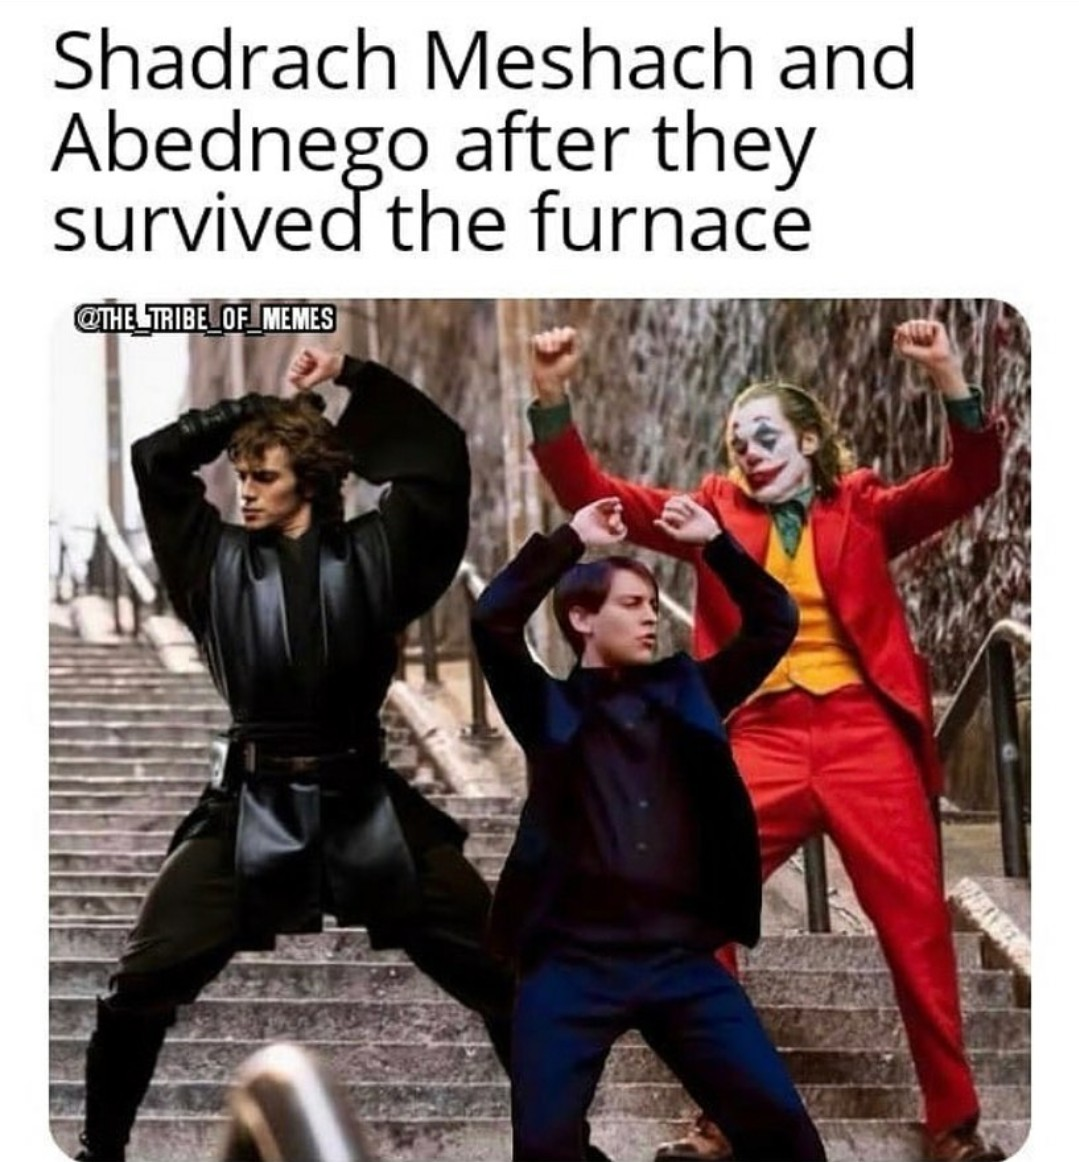 Such fiery. So 4th person in there - meme